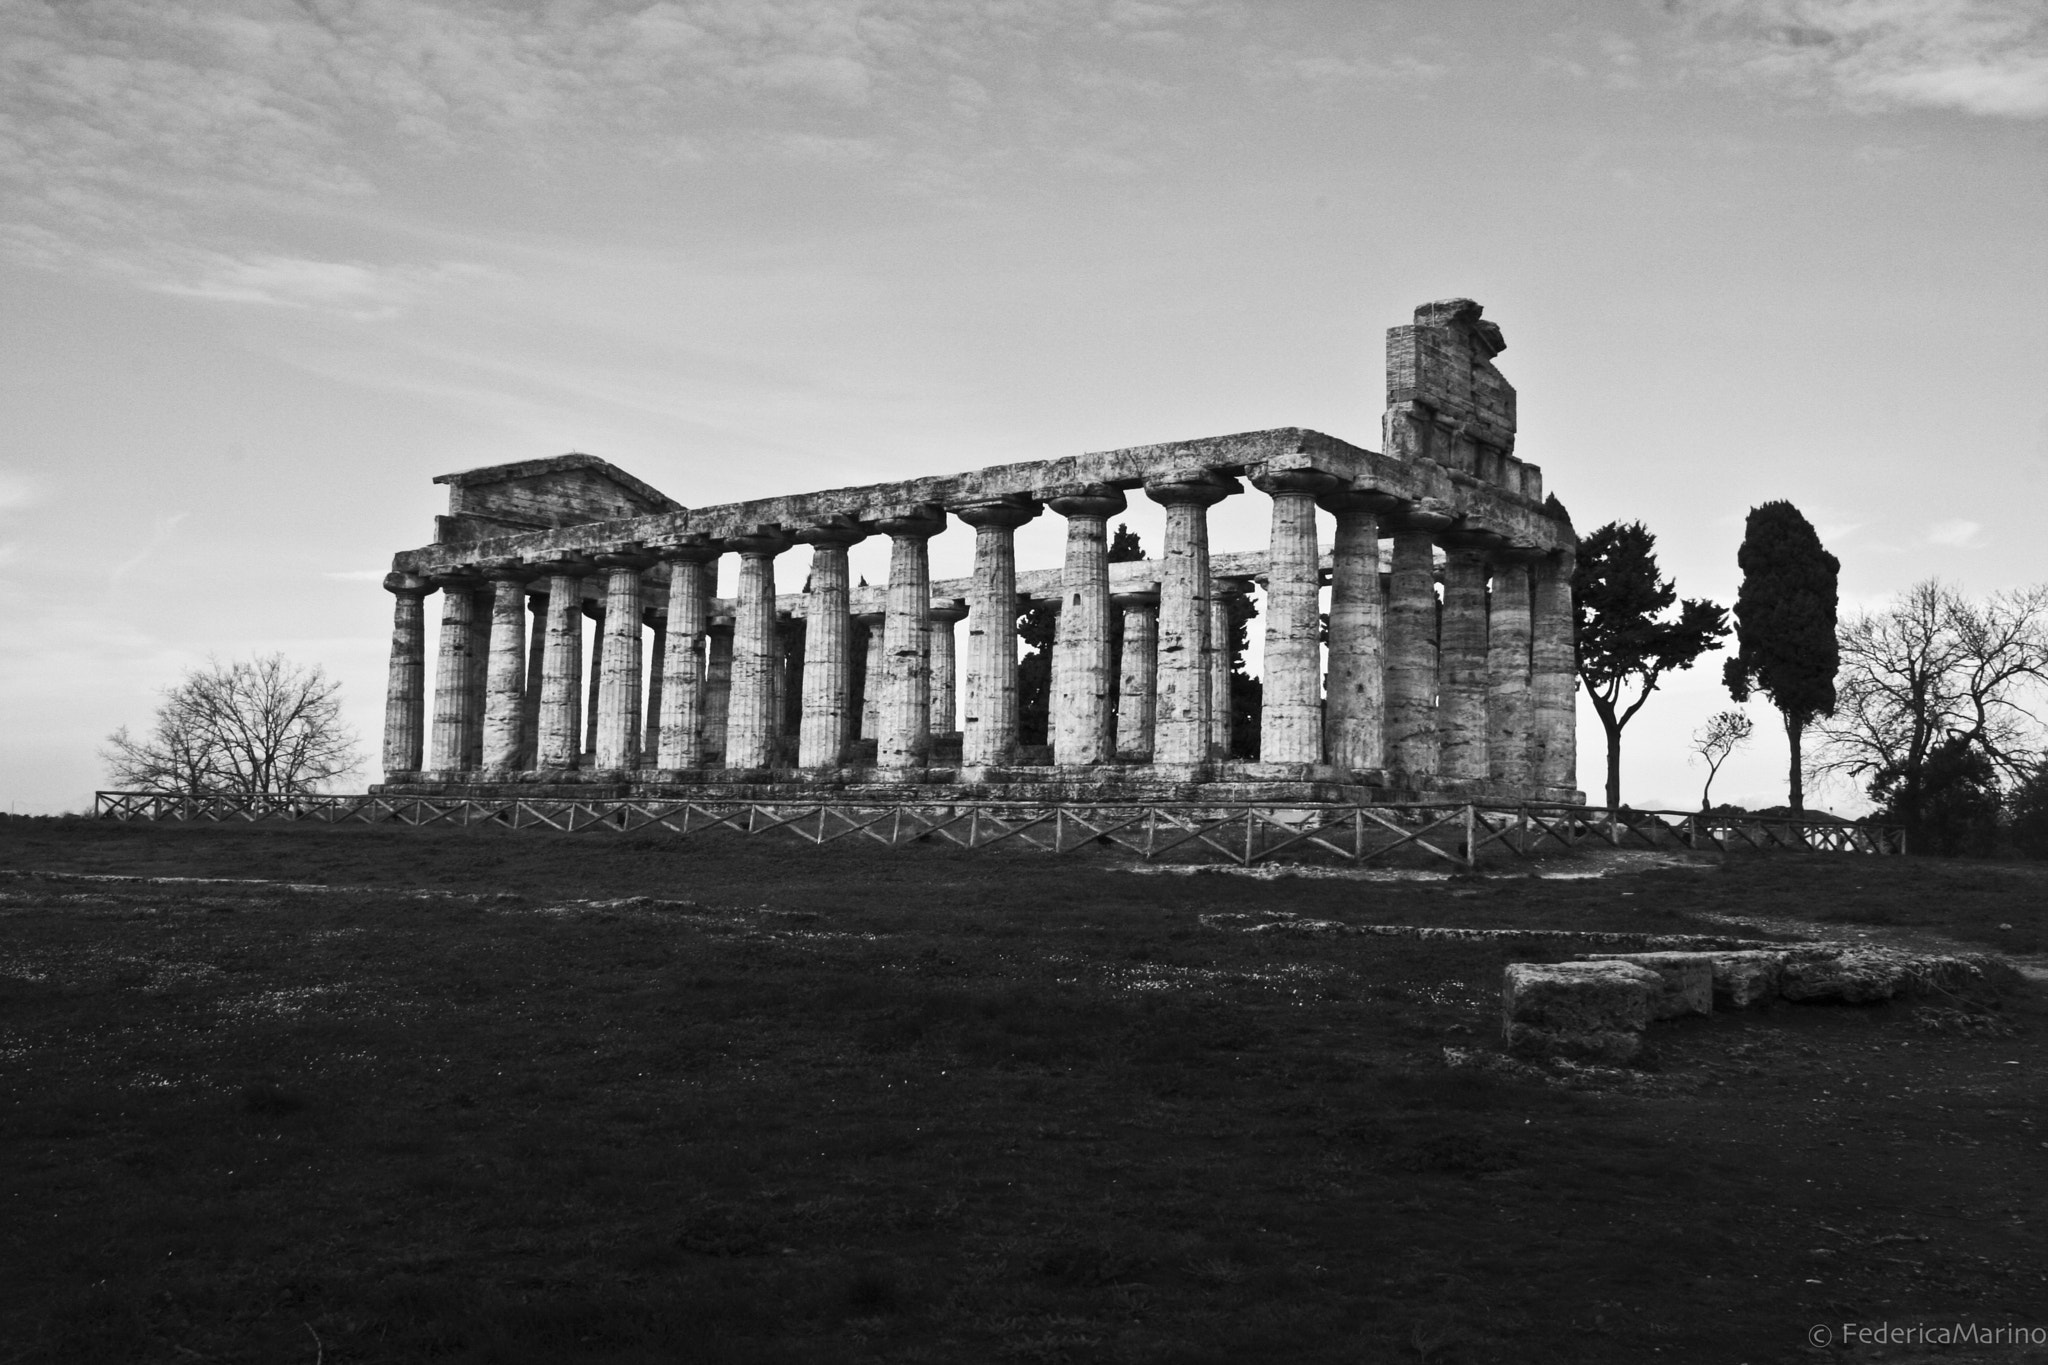 Photograph Athena's Temple by Federica Marino on 500px